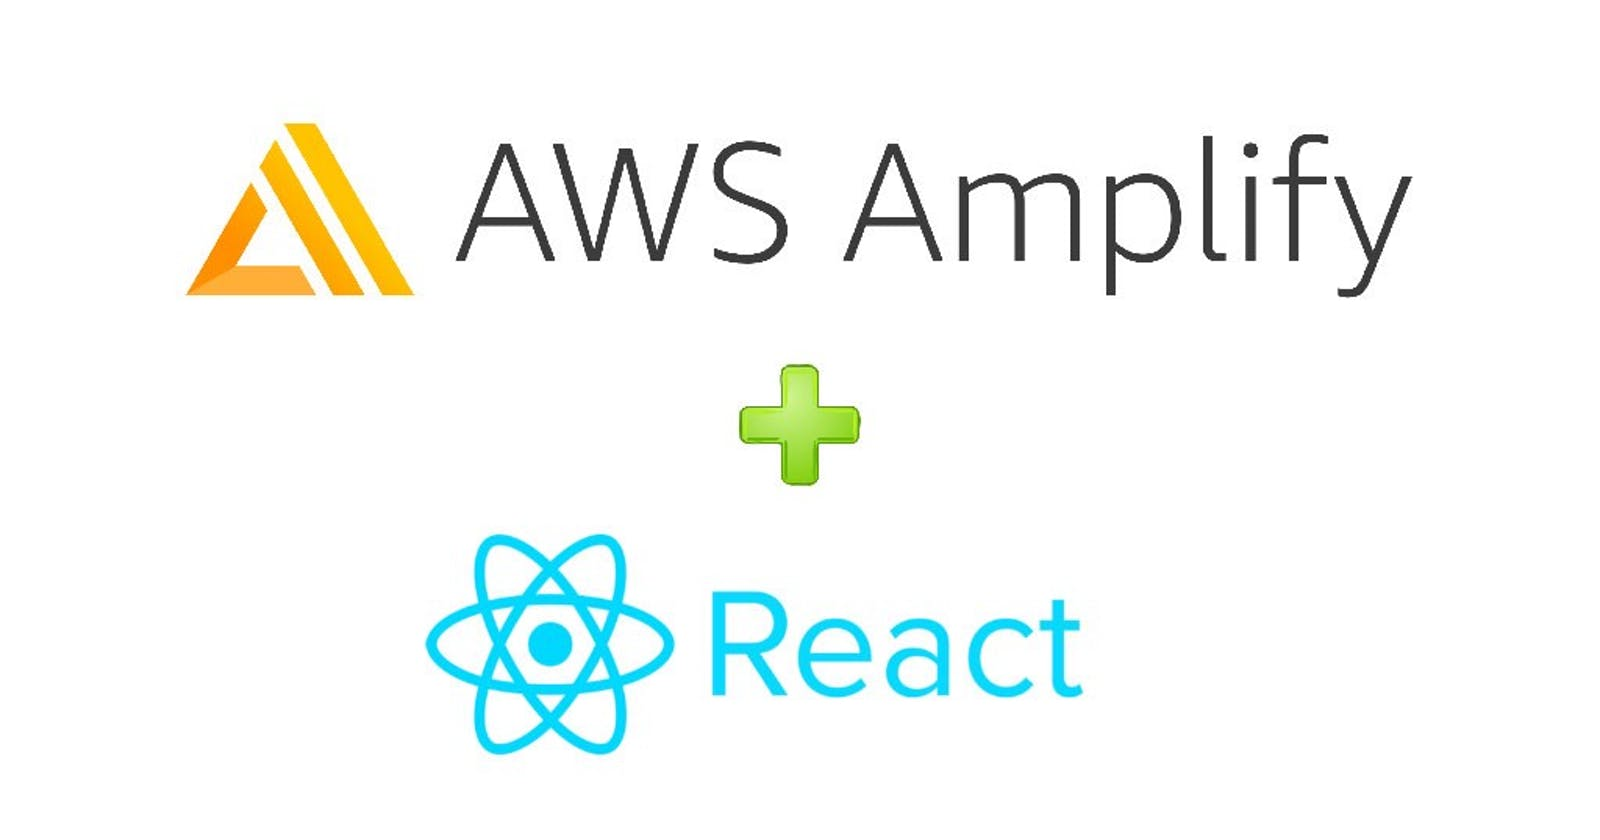 Deploying React app using AWS Amplify with CI/CD pipeline setup